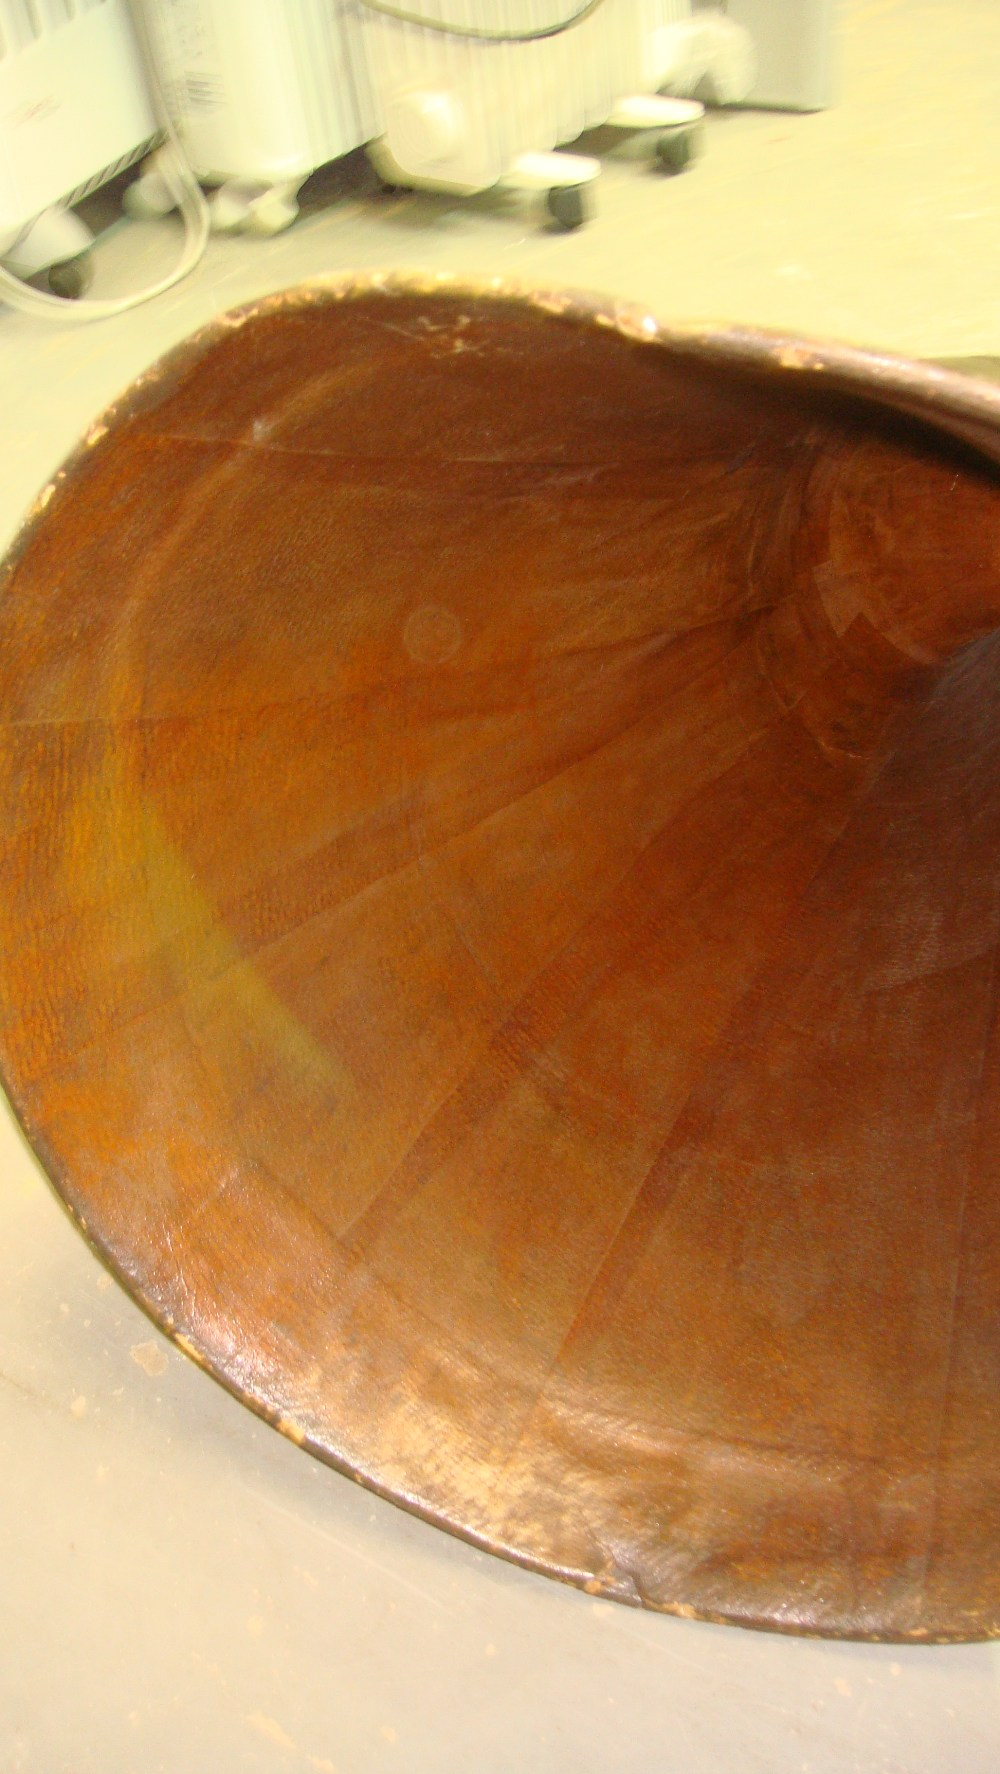 Lot 533 - 20th century EMG table top wind up gramophone in walnut inlaid case,